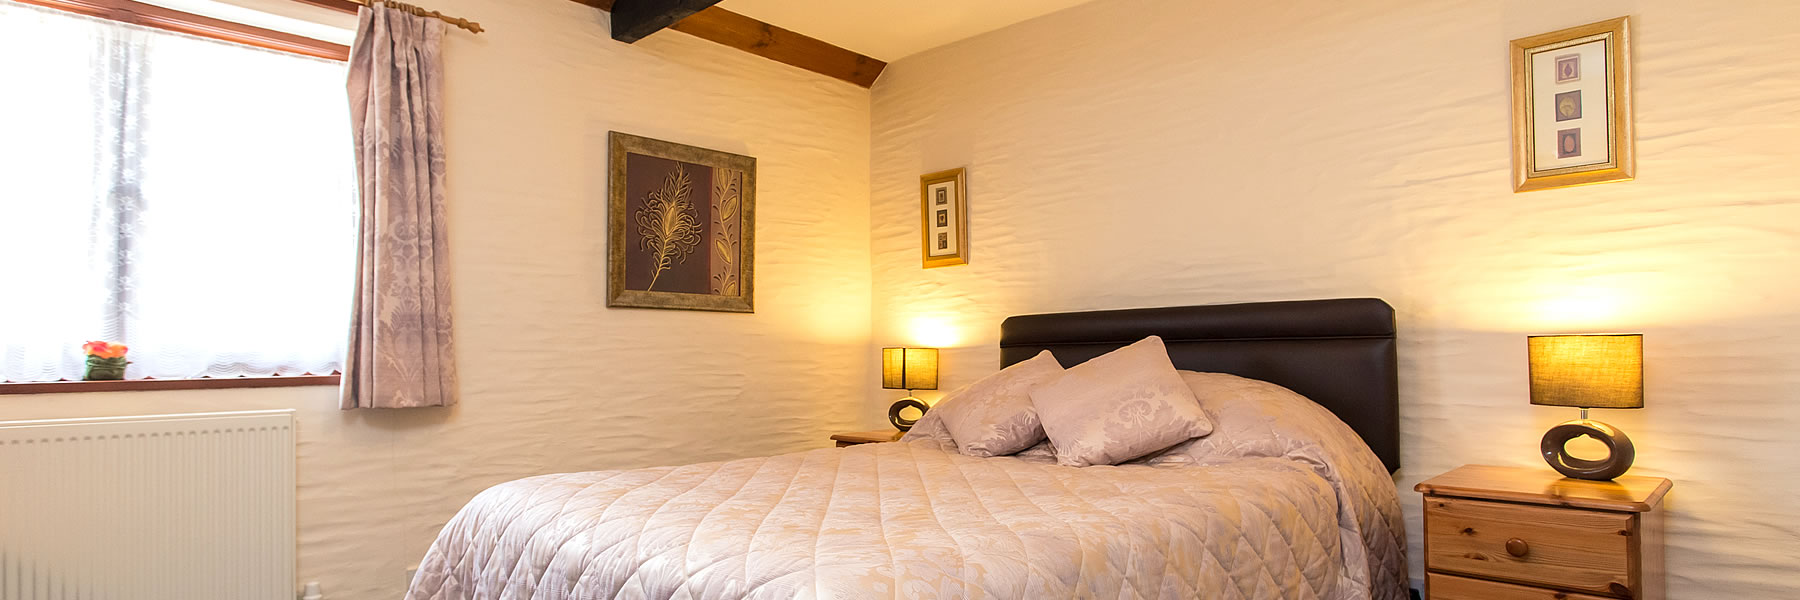 Tack Room Holiday Cottage Ideal for Small Families Romantic Breaks